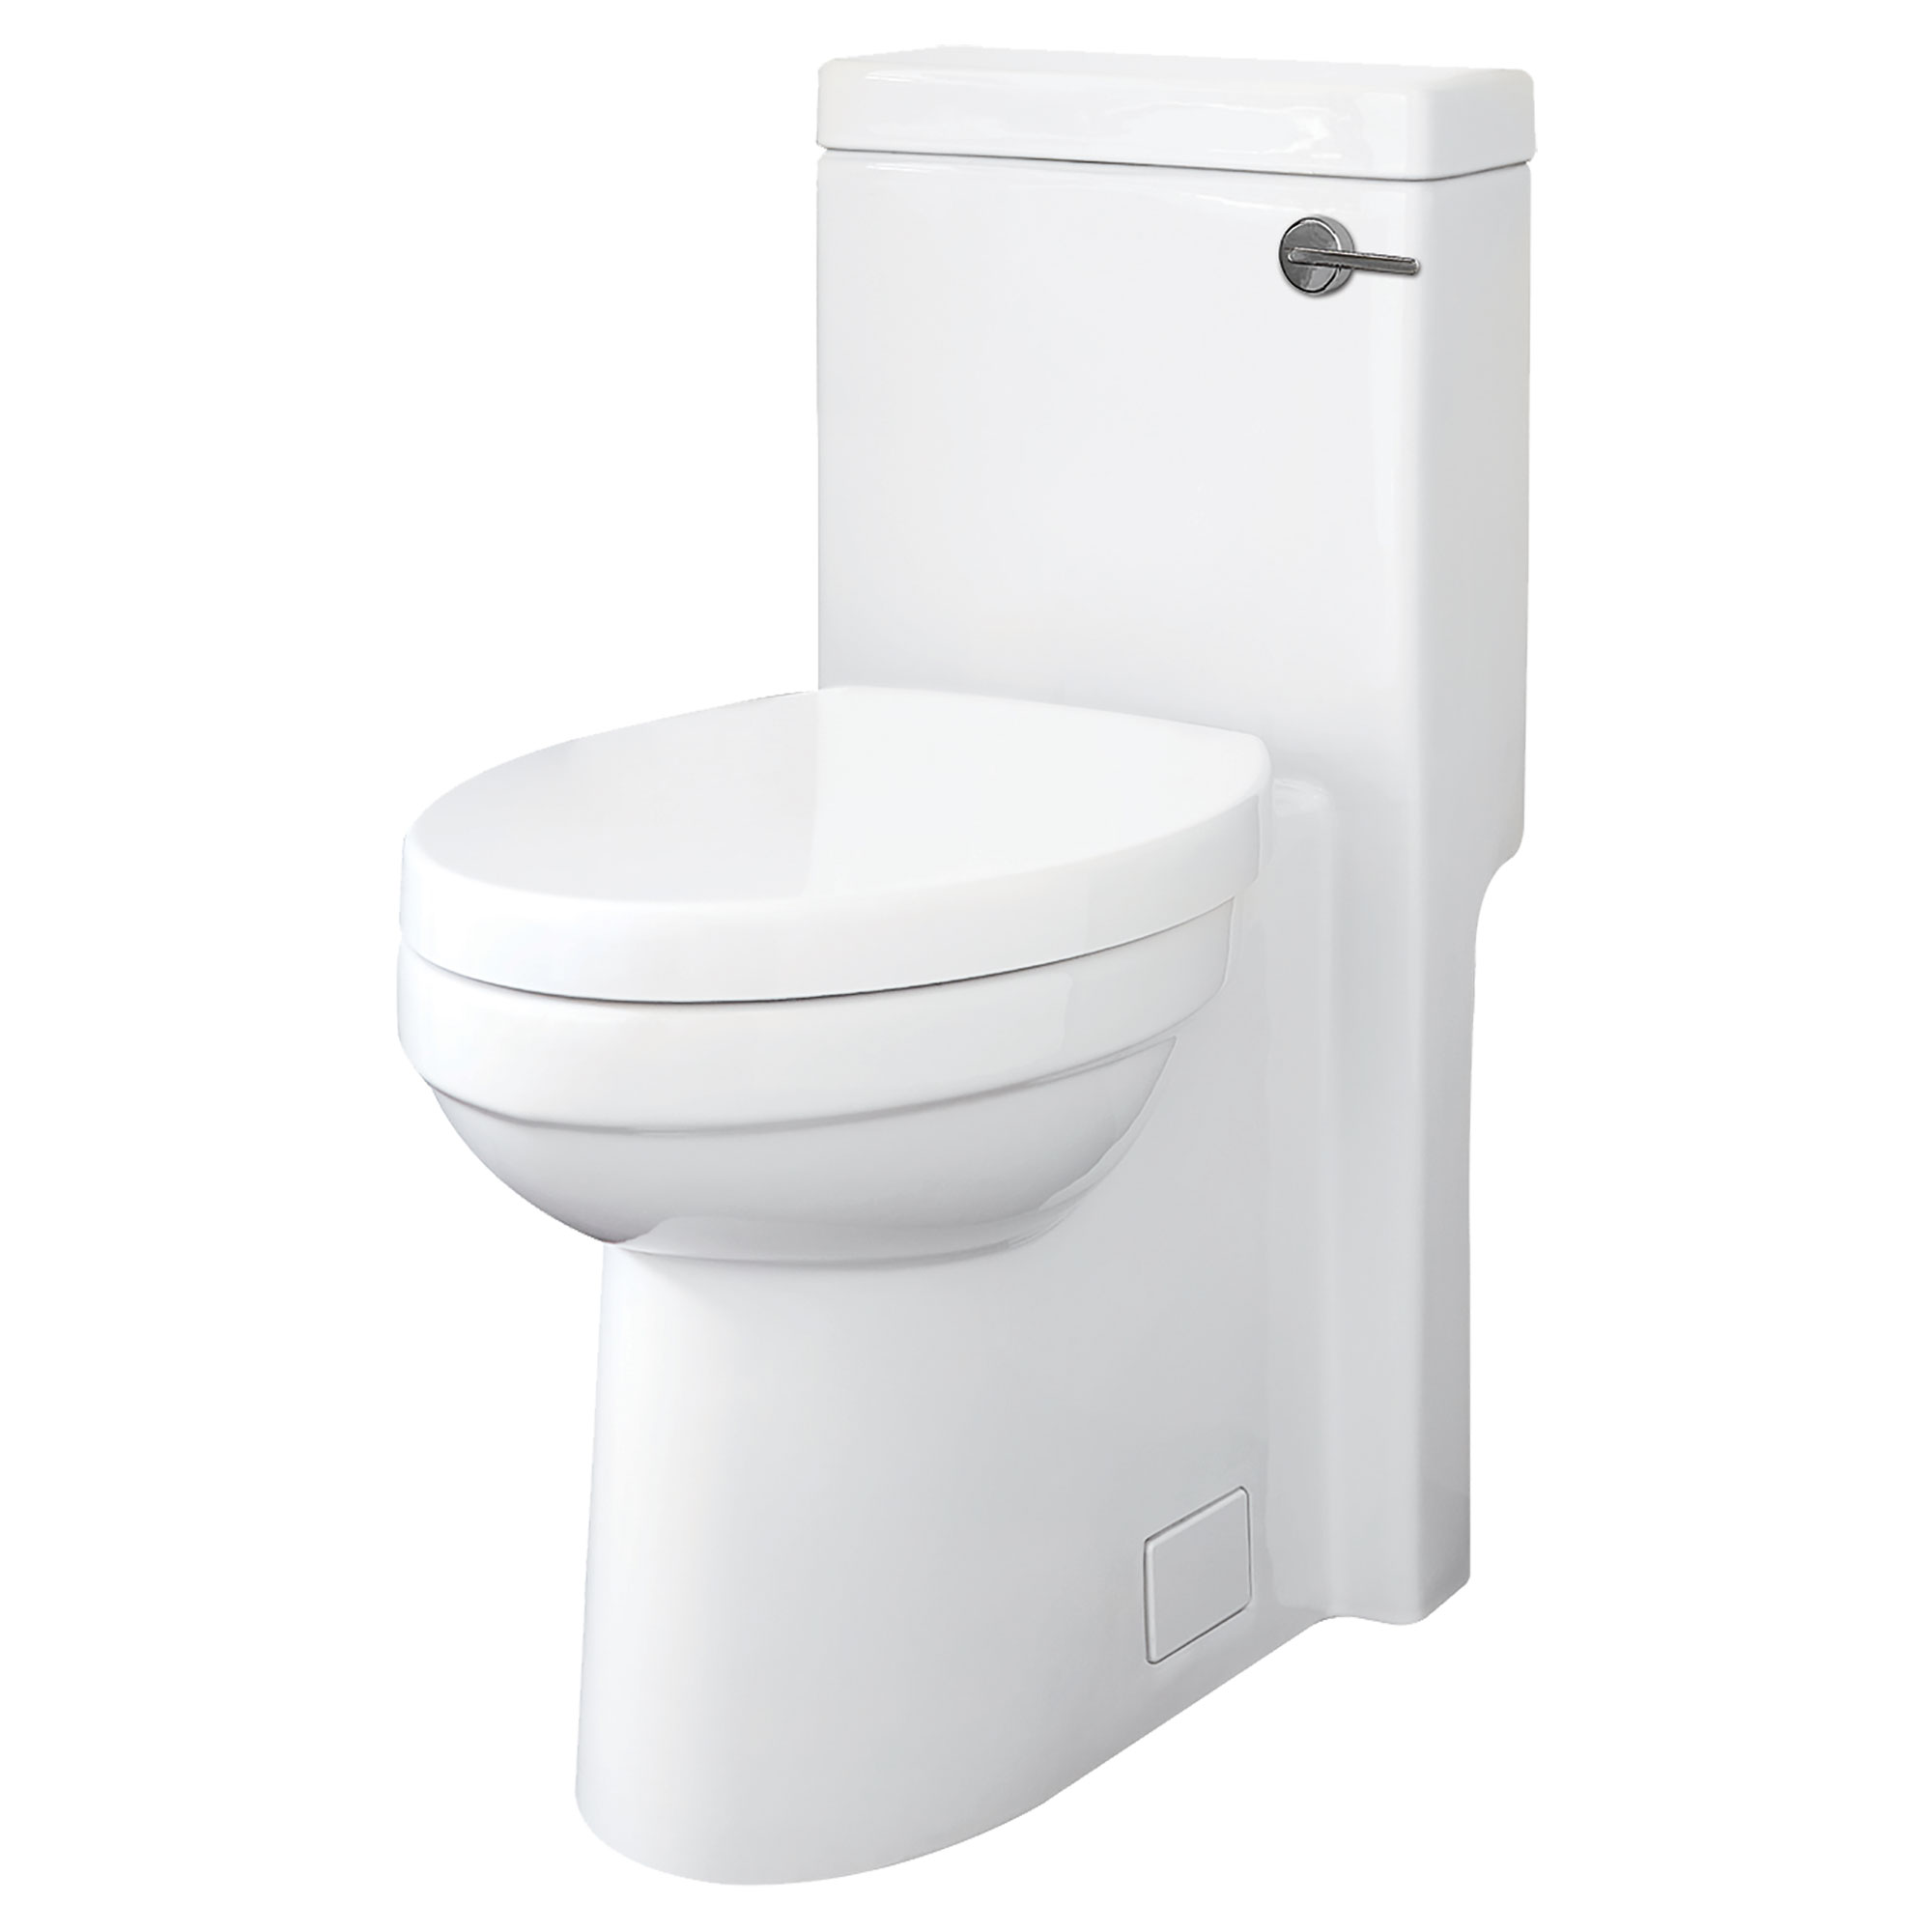 Cossu Elongated One-Piece Toilet with Right-Hand Trip Lever